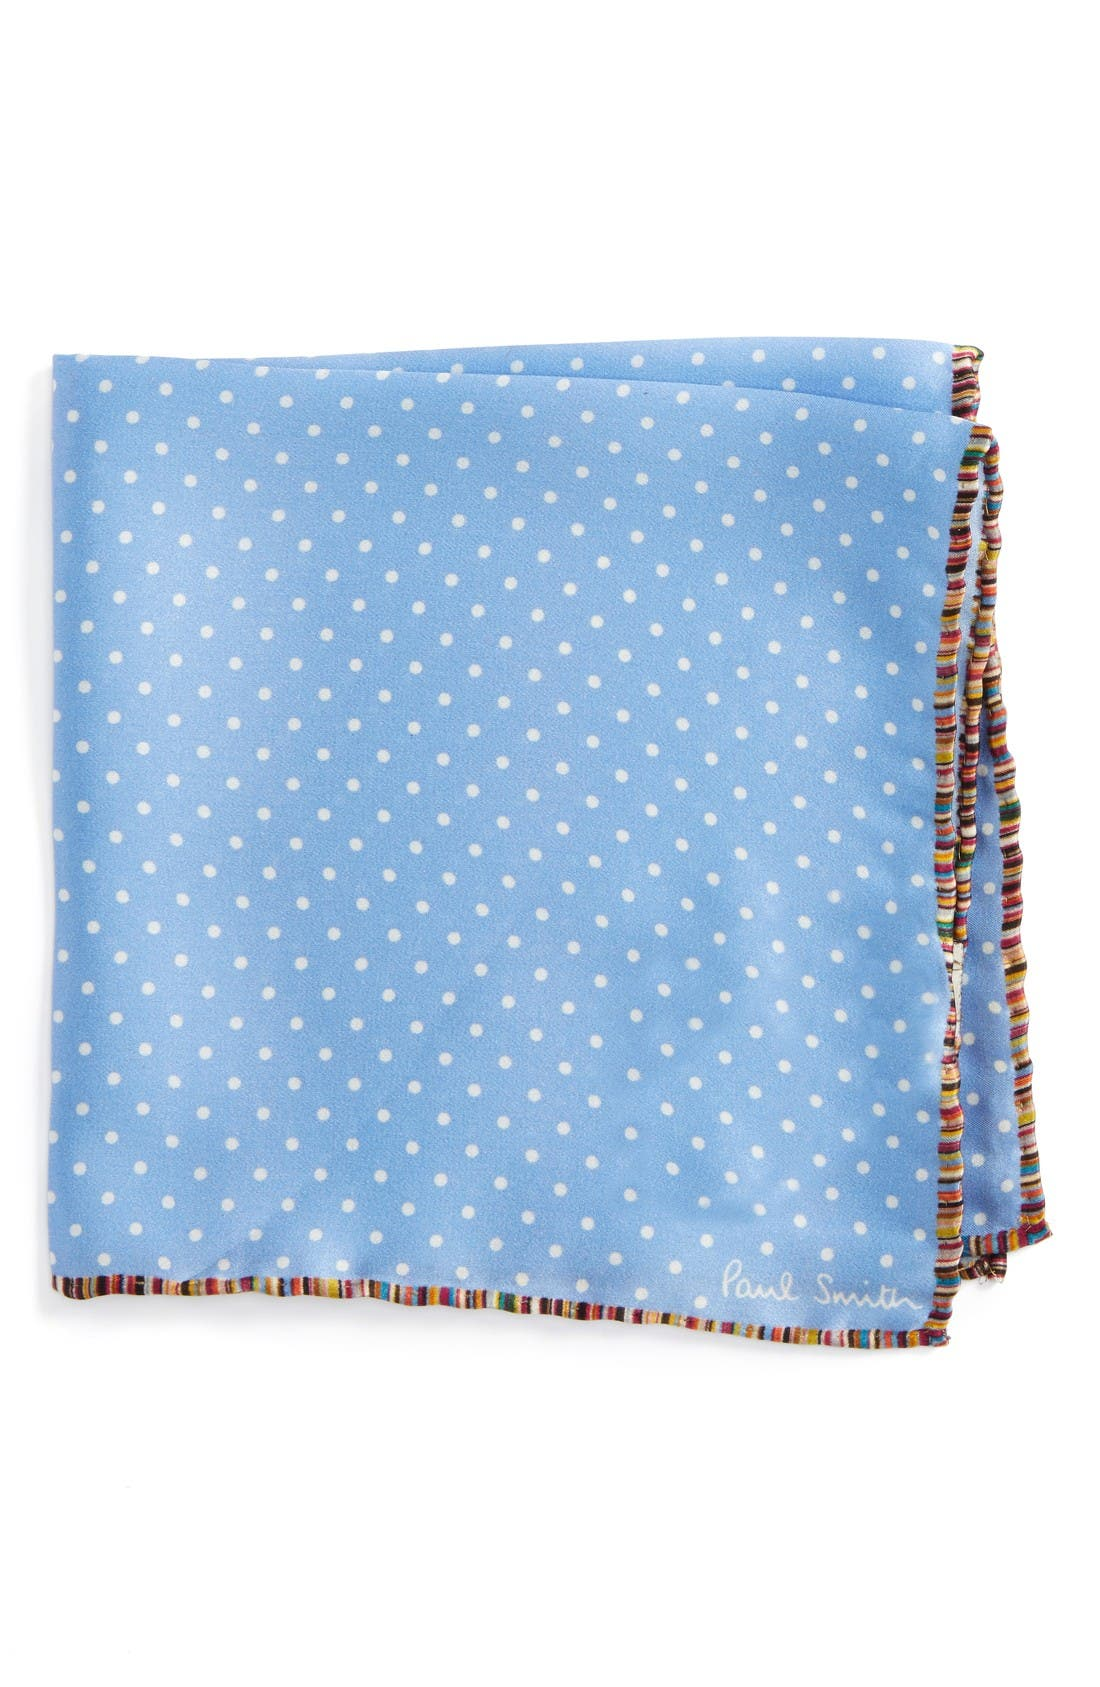 PAUL SMITH Pindot Silk Pocket Square